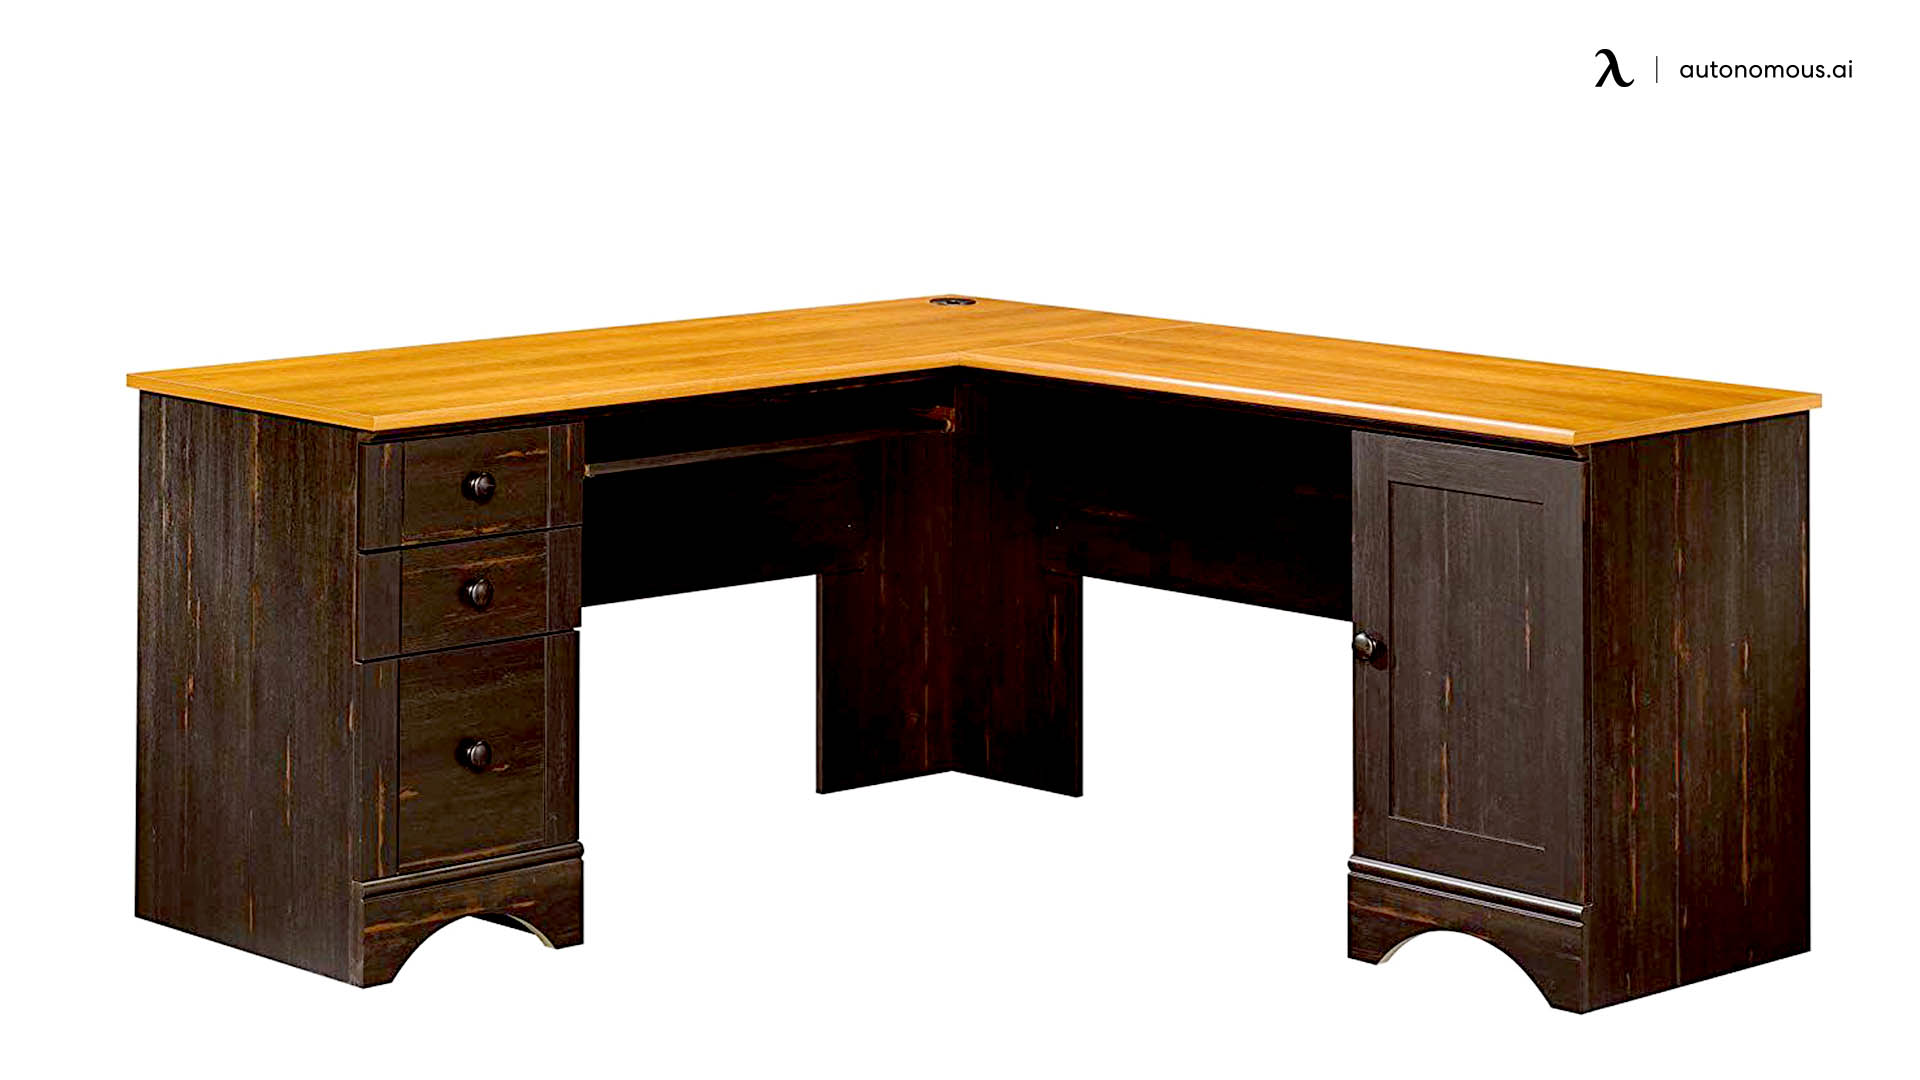 Single Person Corner Desk with Drawers